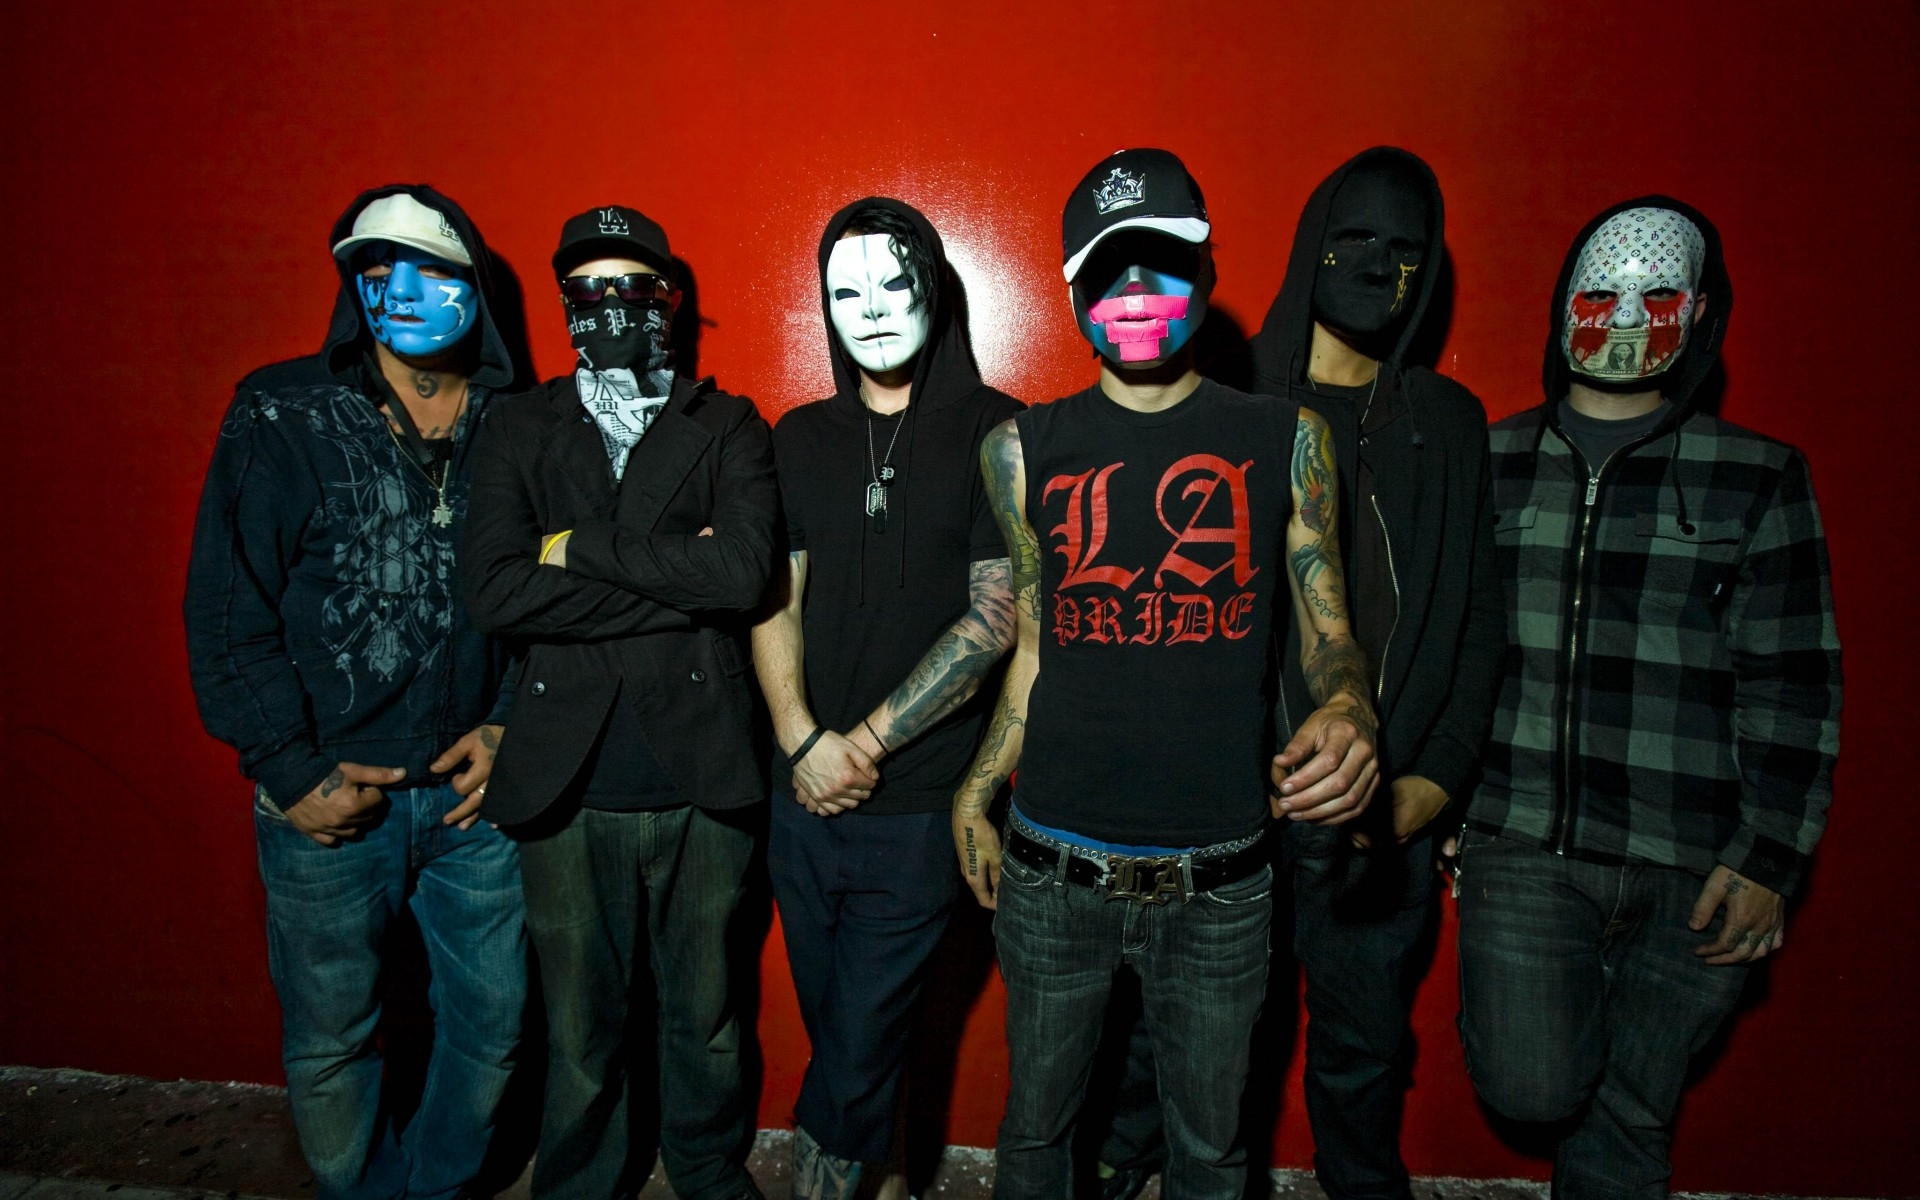 hollywood undead, da kurlzz, deuce, hollywood